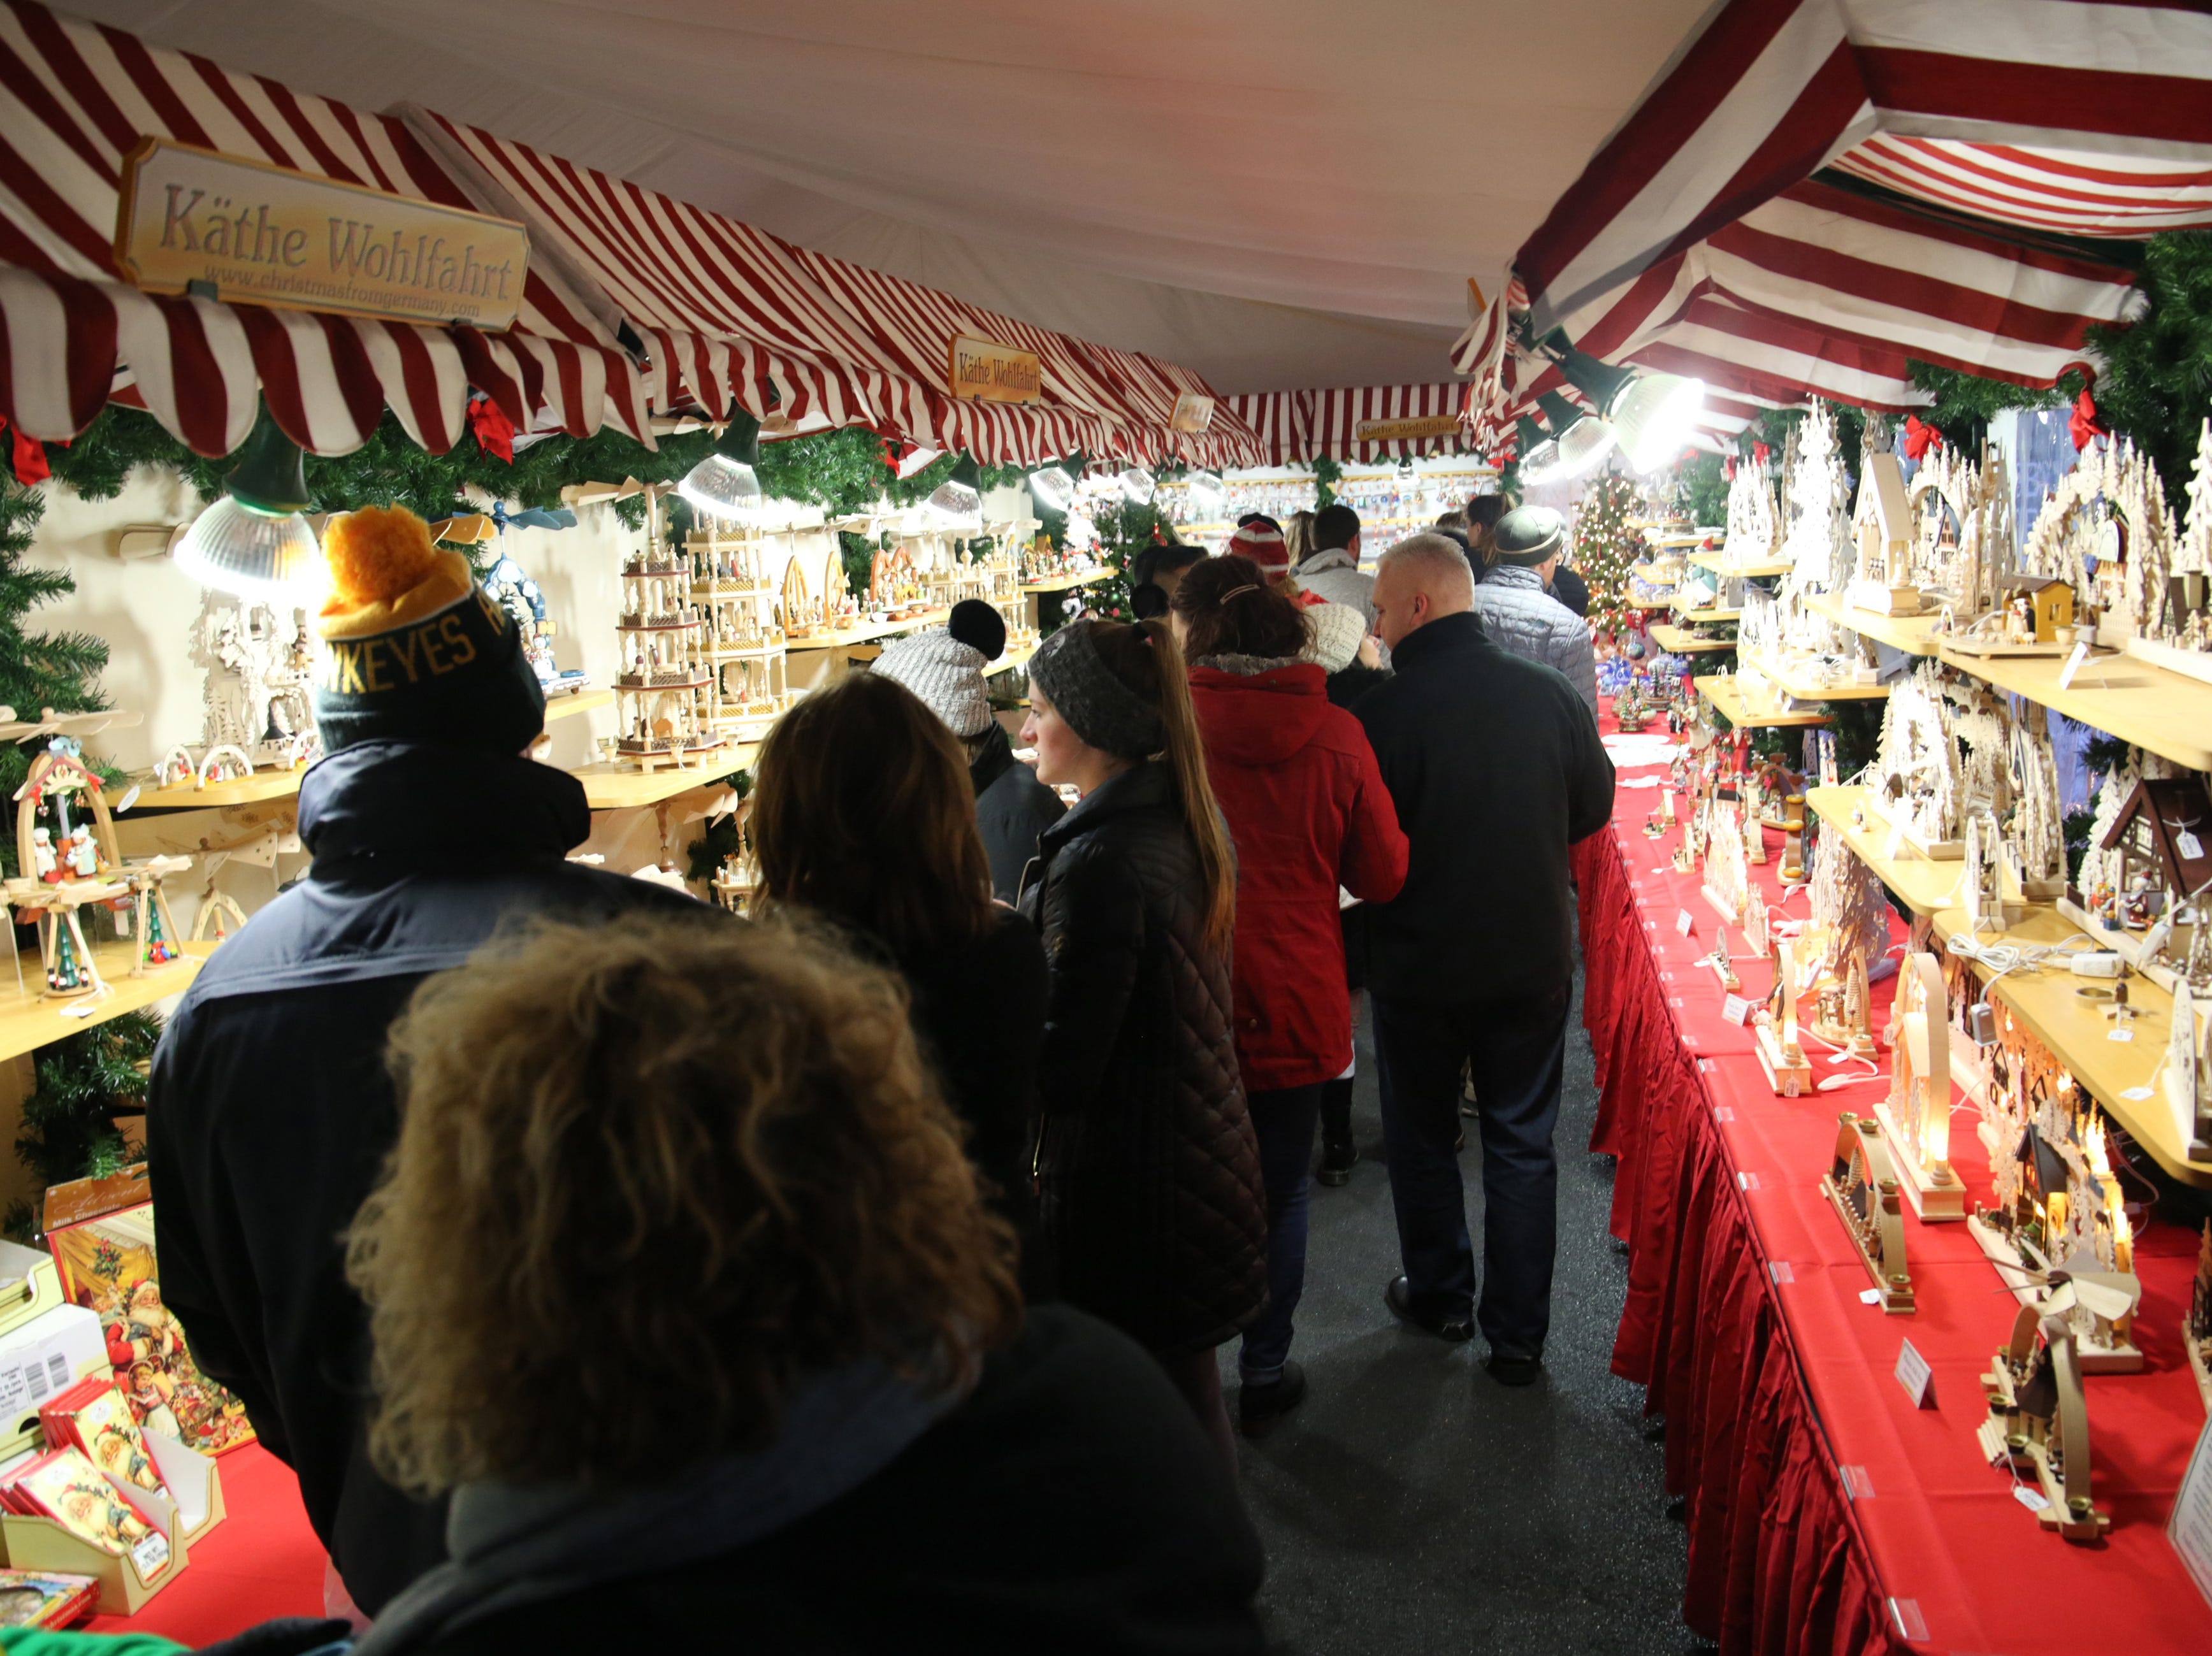 People crowd the Kathe Wohlfahrt tent containing numerous holiday items and ornaments.